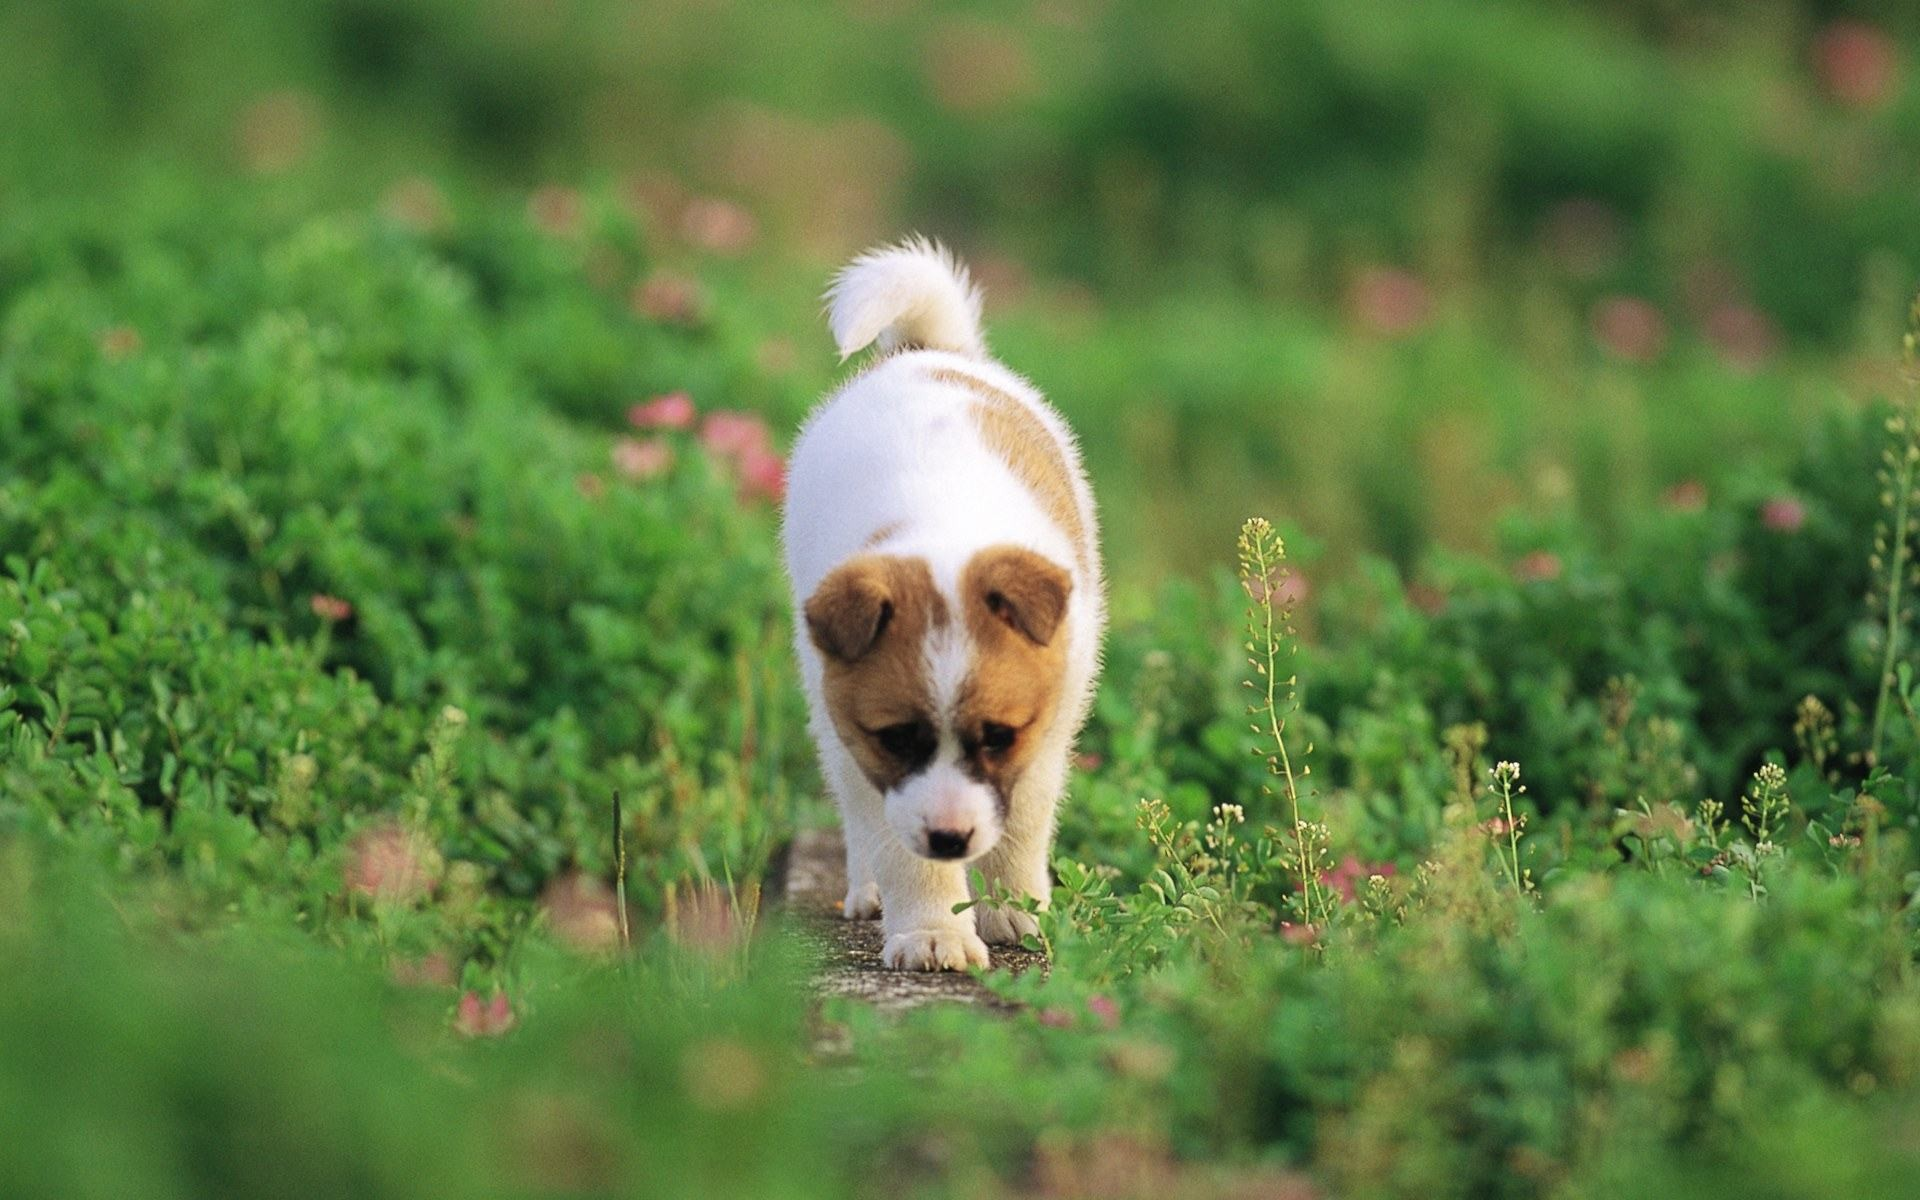 Puppy Wallpaper HD 60 Images